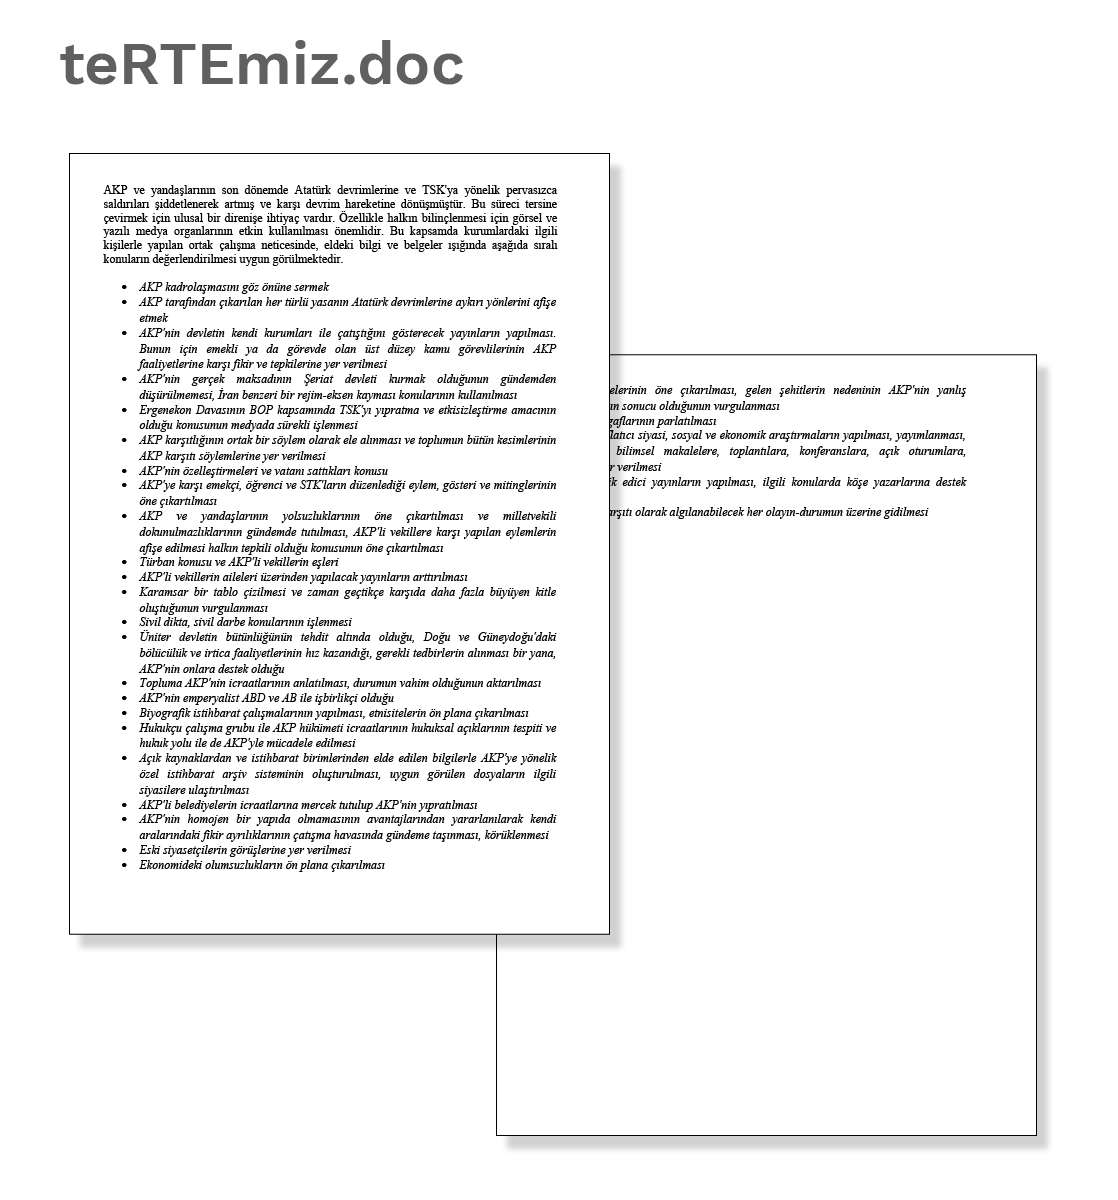 Document 8: teRTEmiz.doc